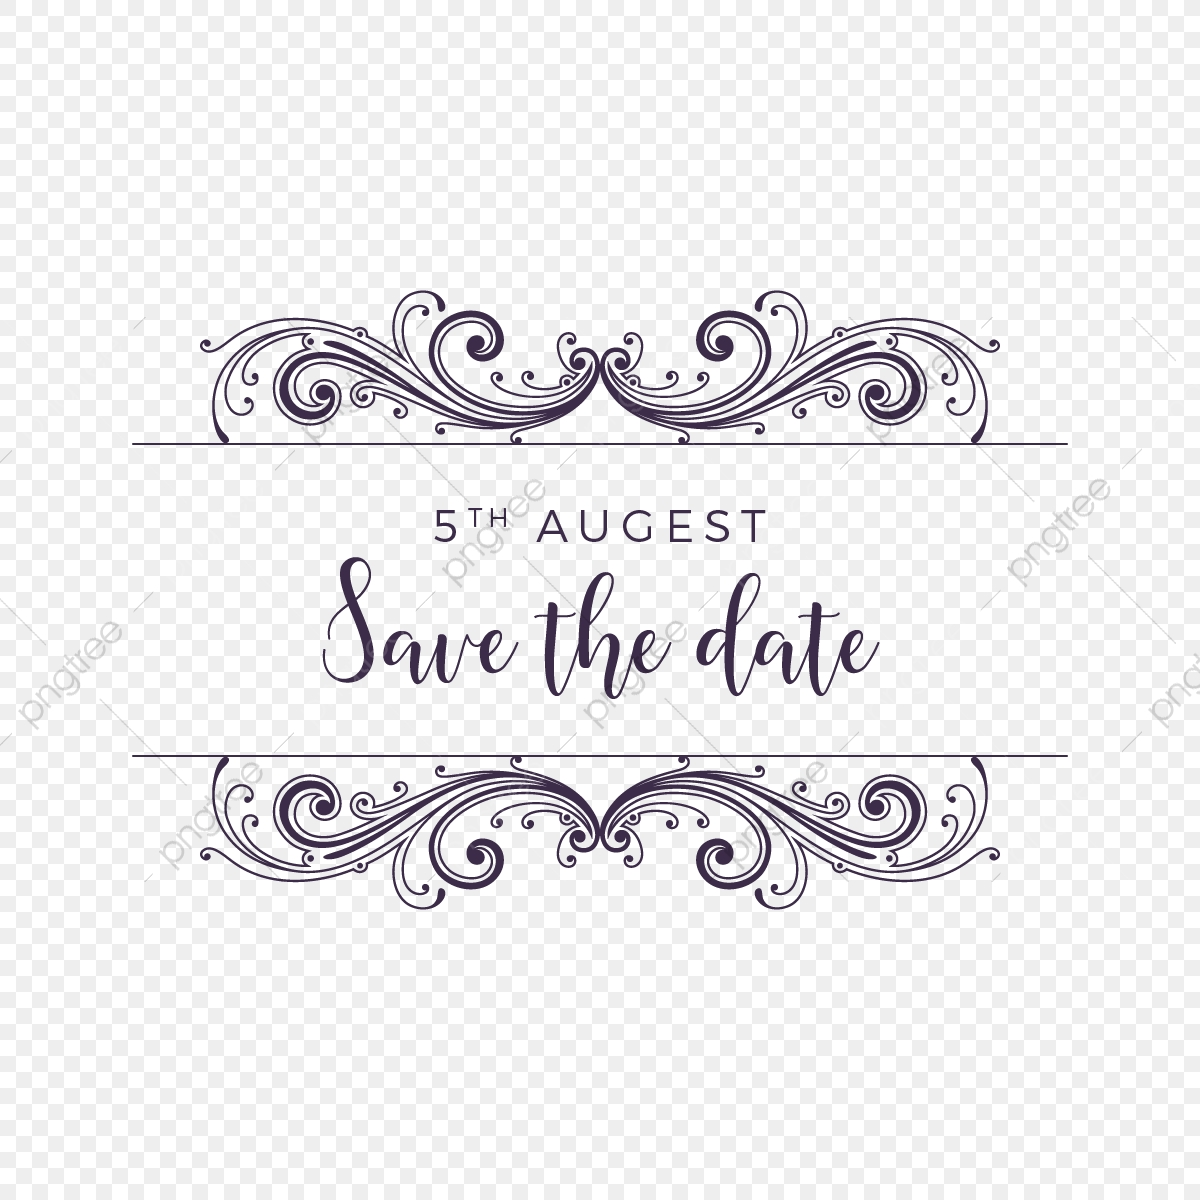 Vintage Style Save The Date Ornament Vector, Vintage.